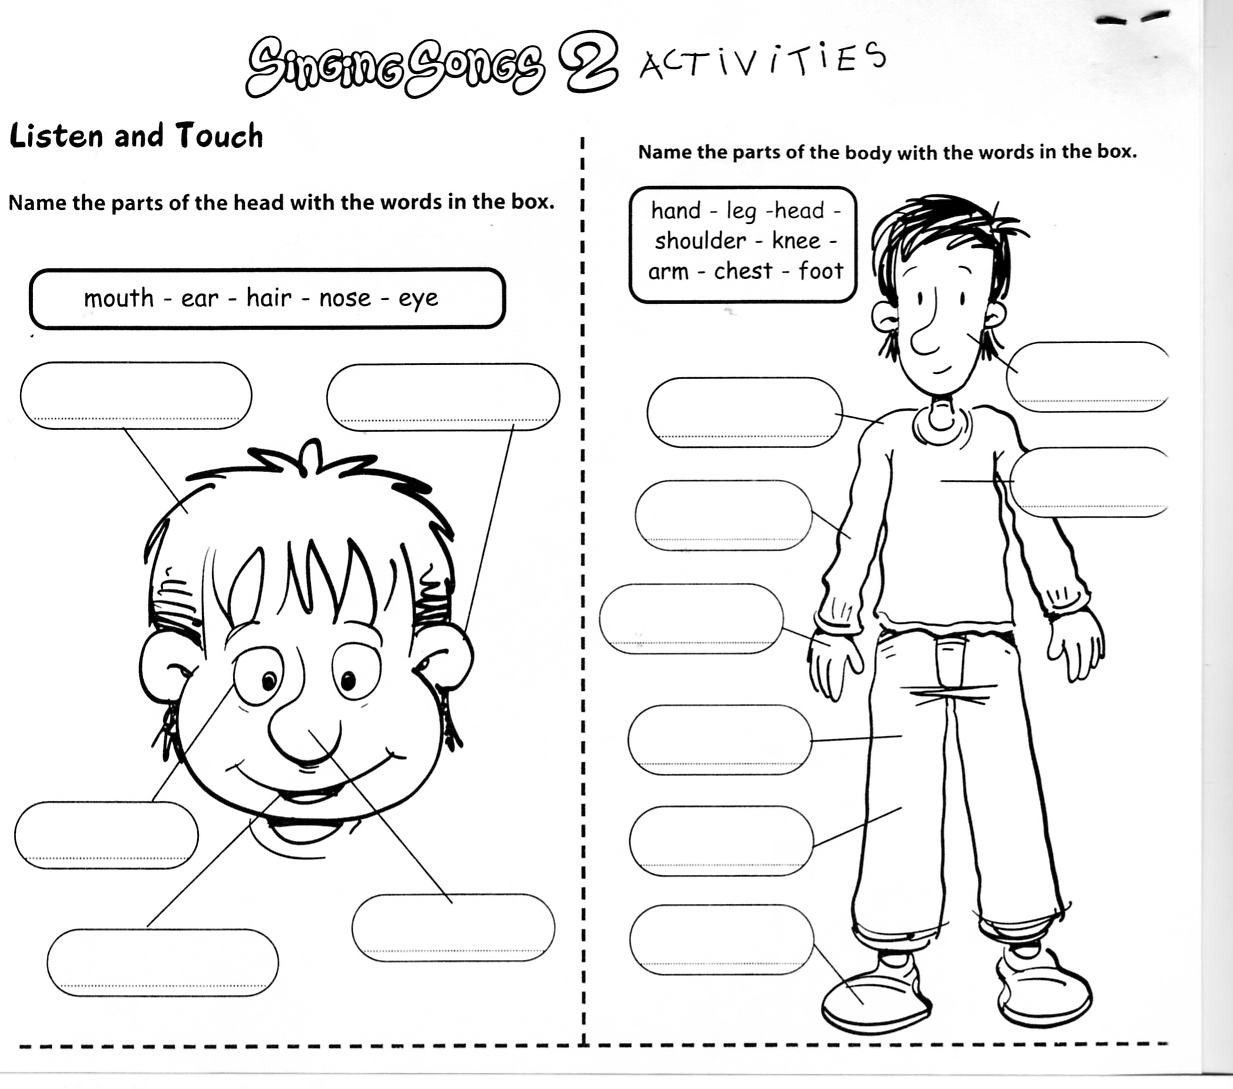 BODY WORKSHEETS | learningenglish-esl